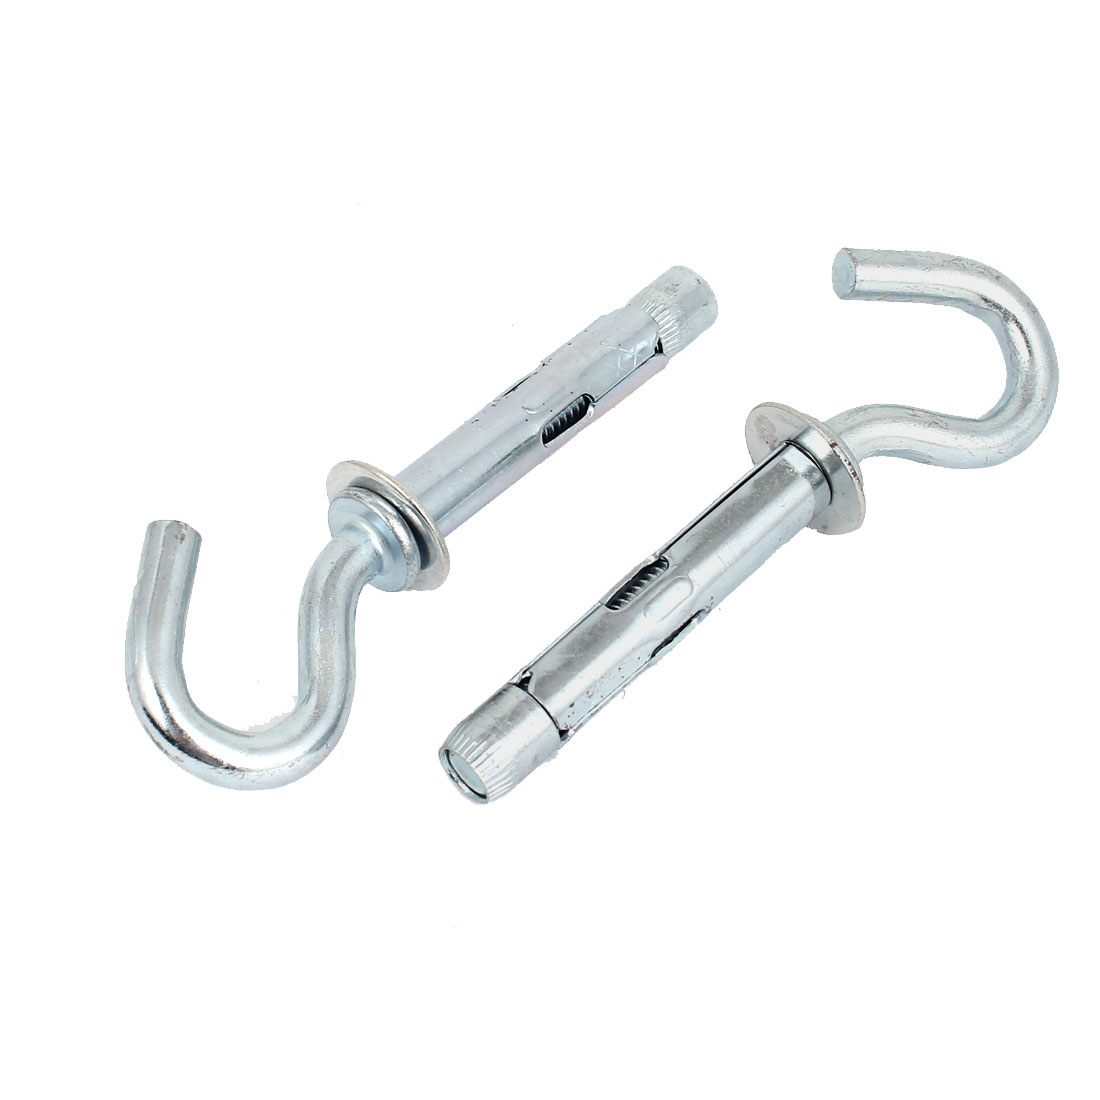 2 Pcs 100mm Long C Type Hook Bolts Expansion Sleeve Anchors Fastener M8x55mm